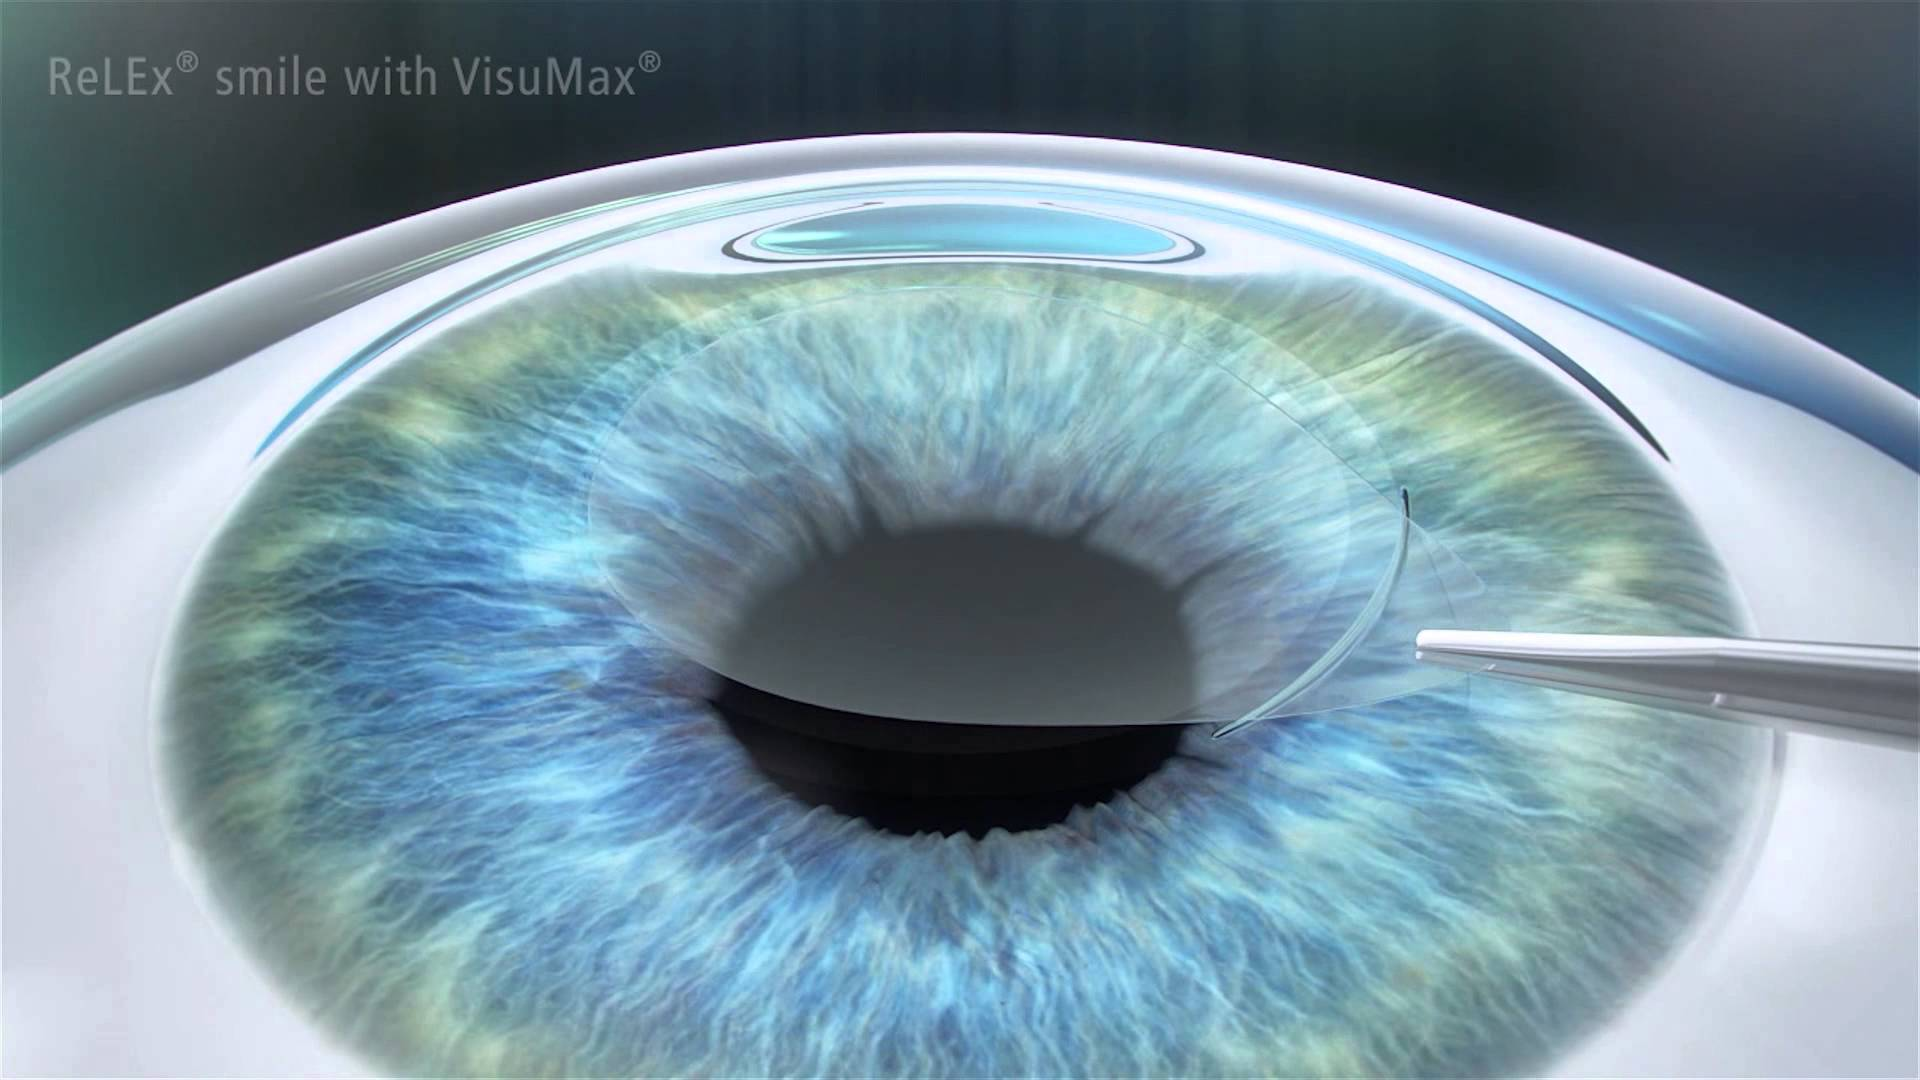 Everything You Need To Know About Smile Eye Surgery